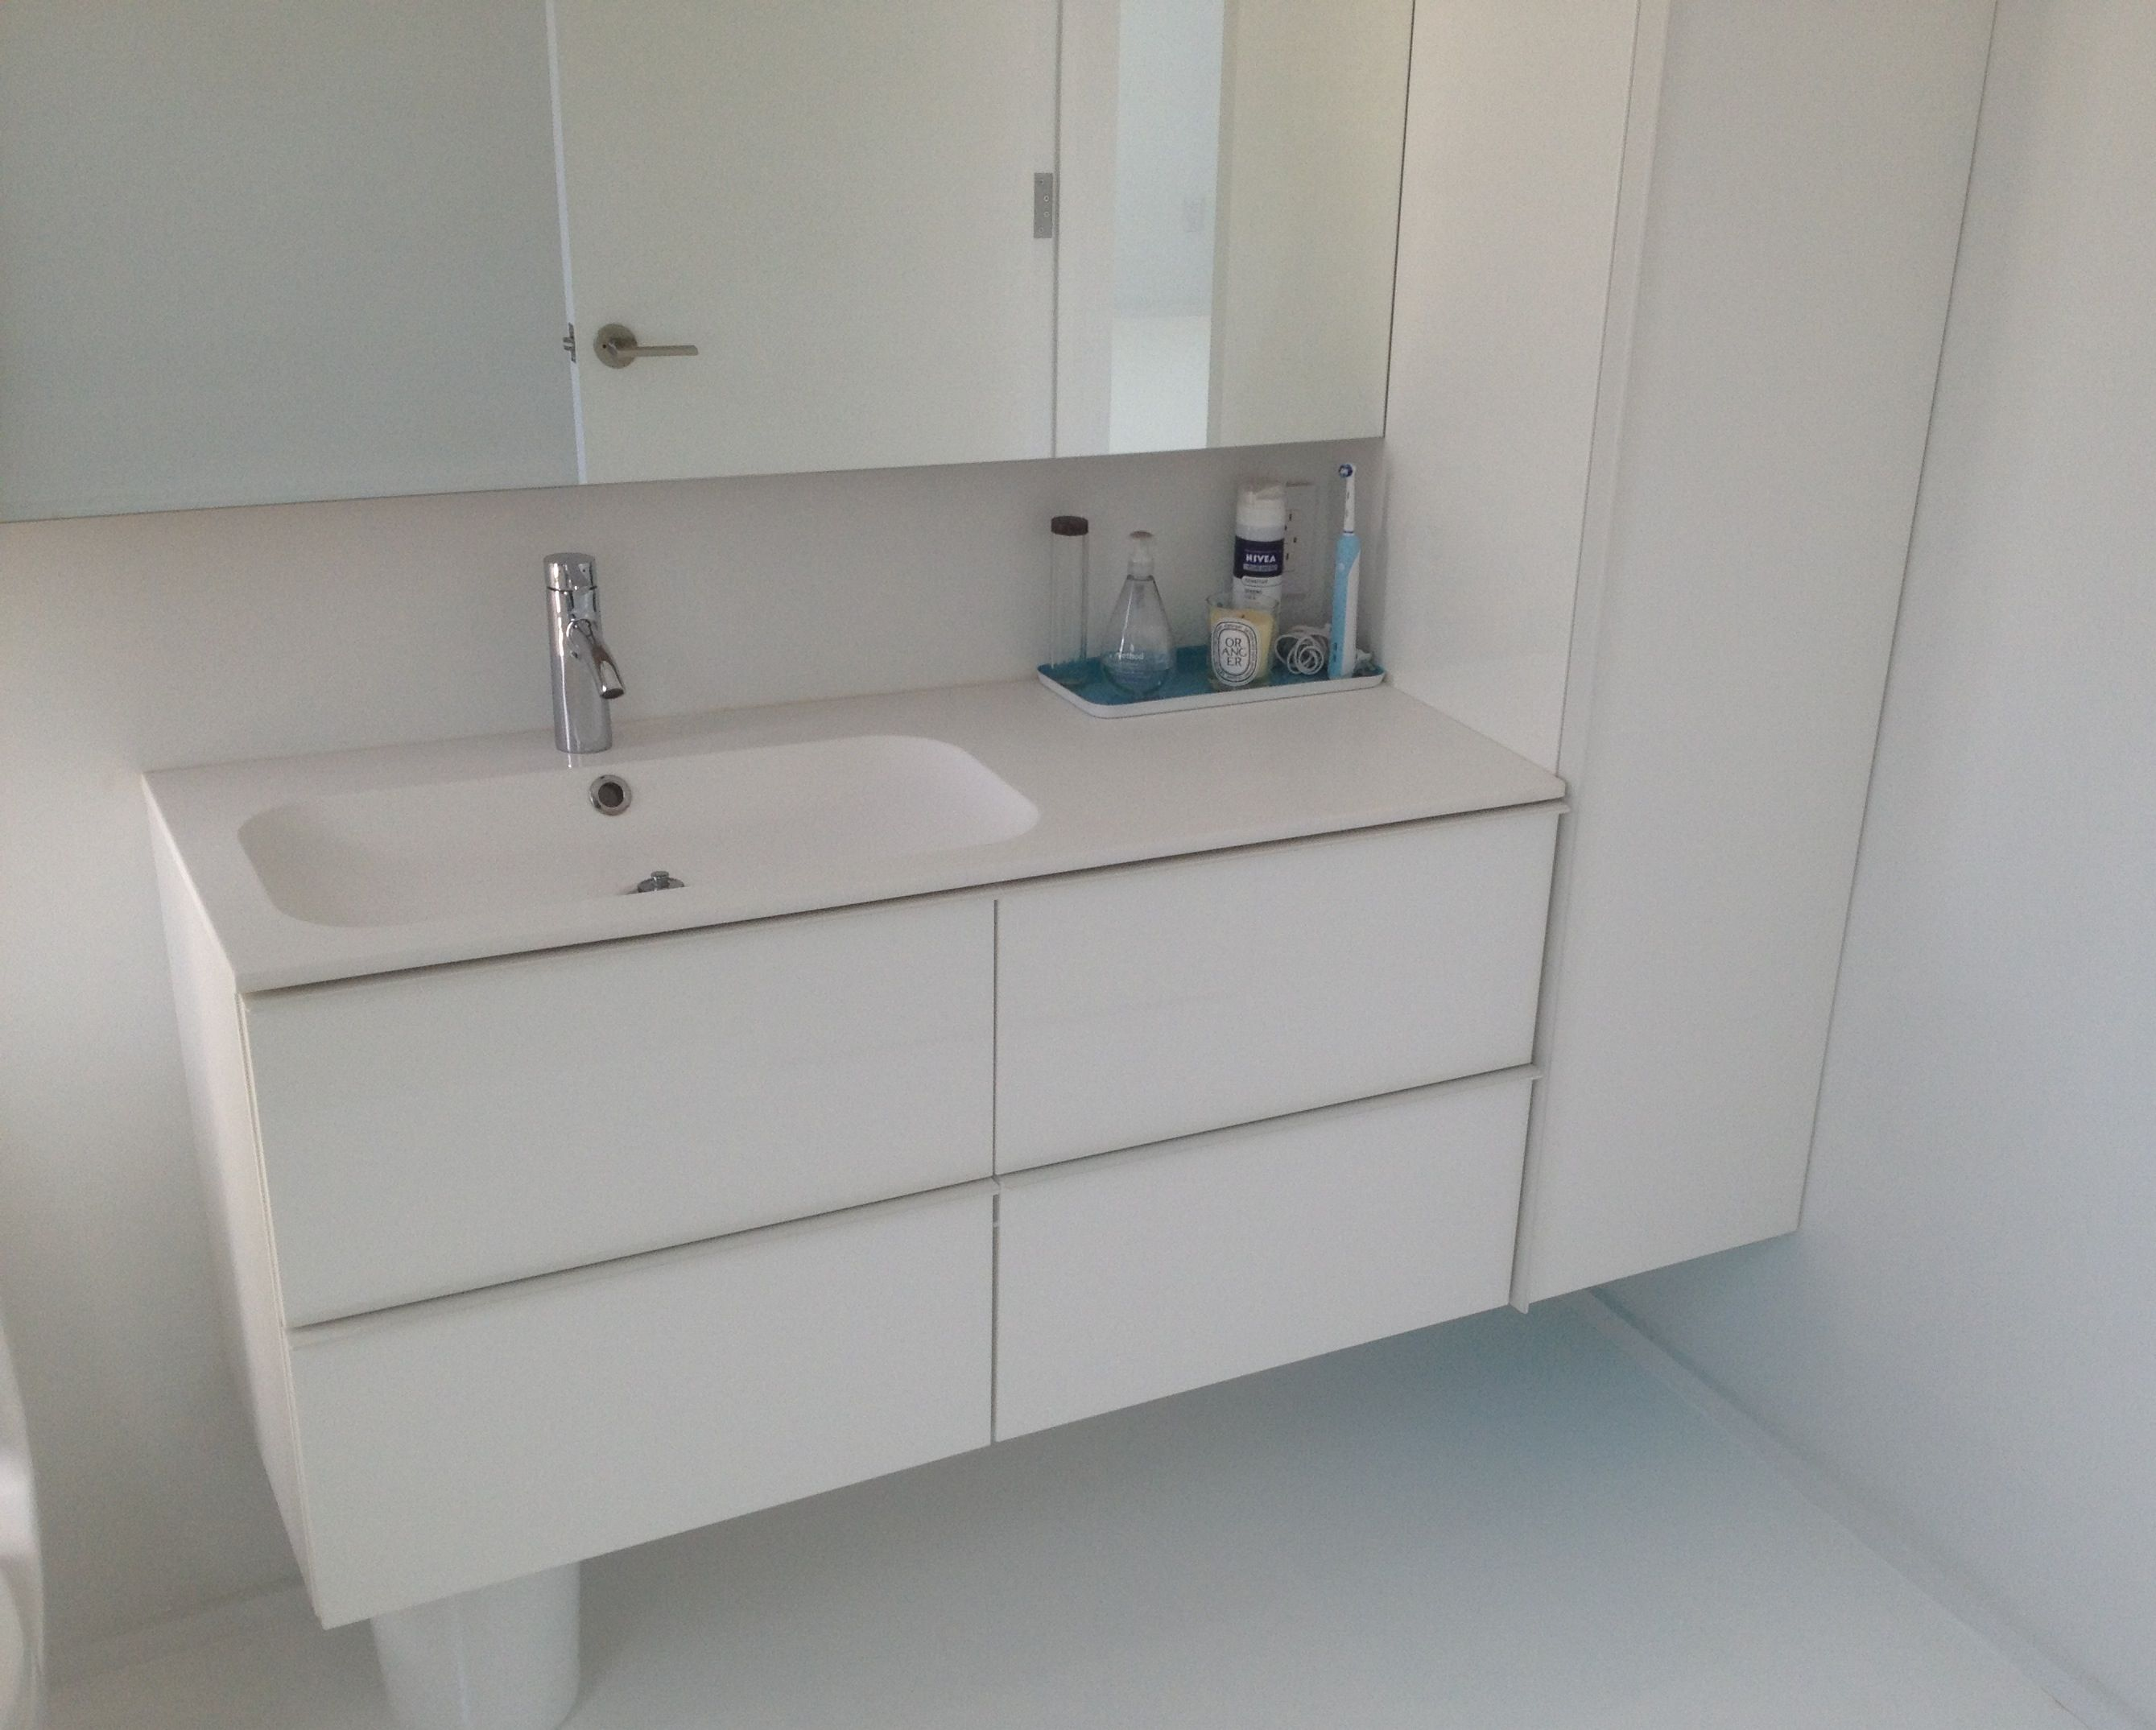 Ikea Godmorgon With Different Sink And Wall Cabinet Bathrooms Pinterest Modern White